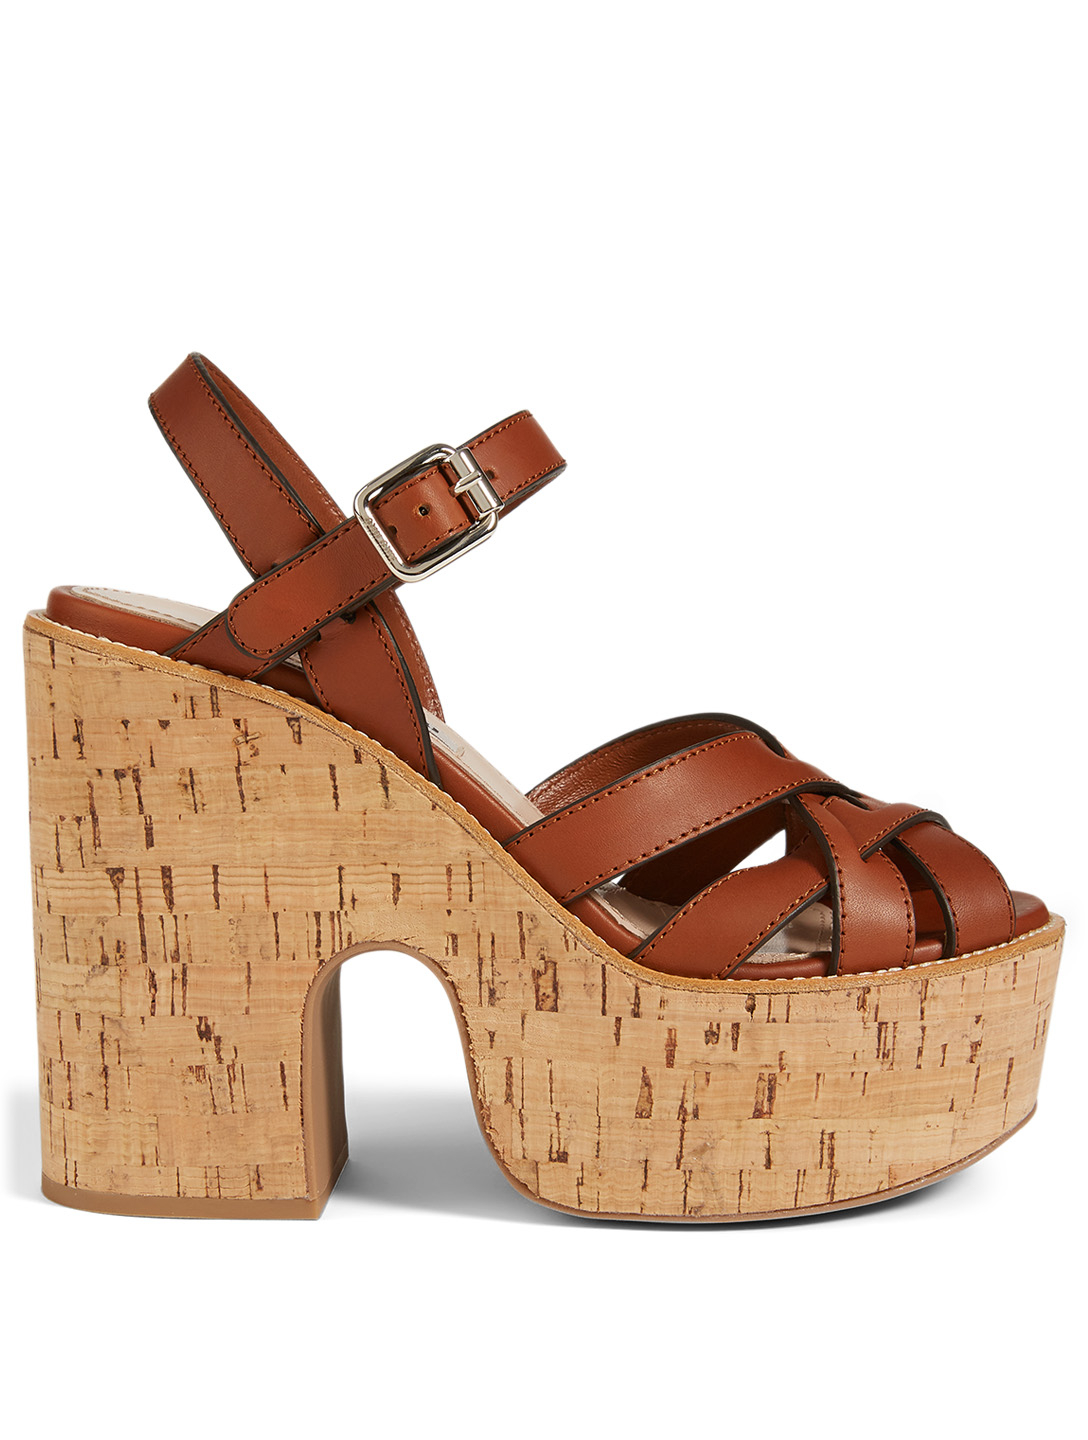 MIU MIU Leather Platform Sandals Women's Brown